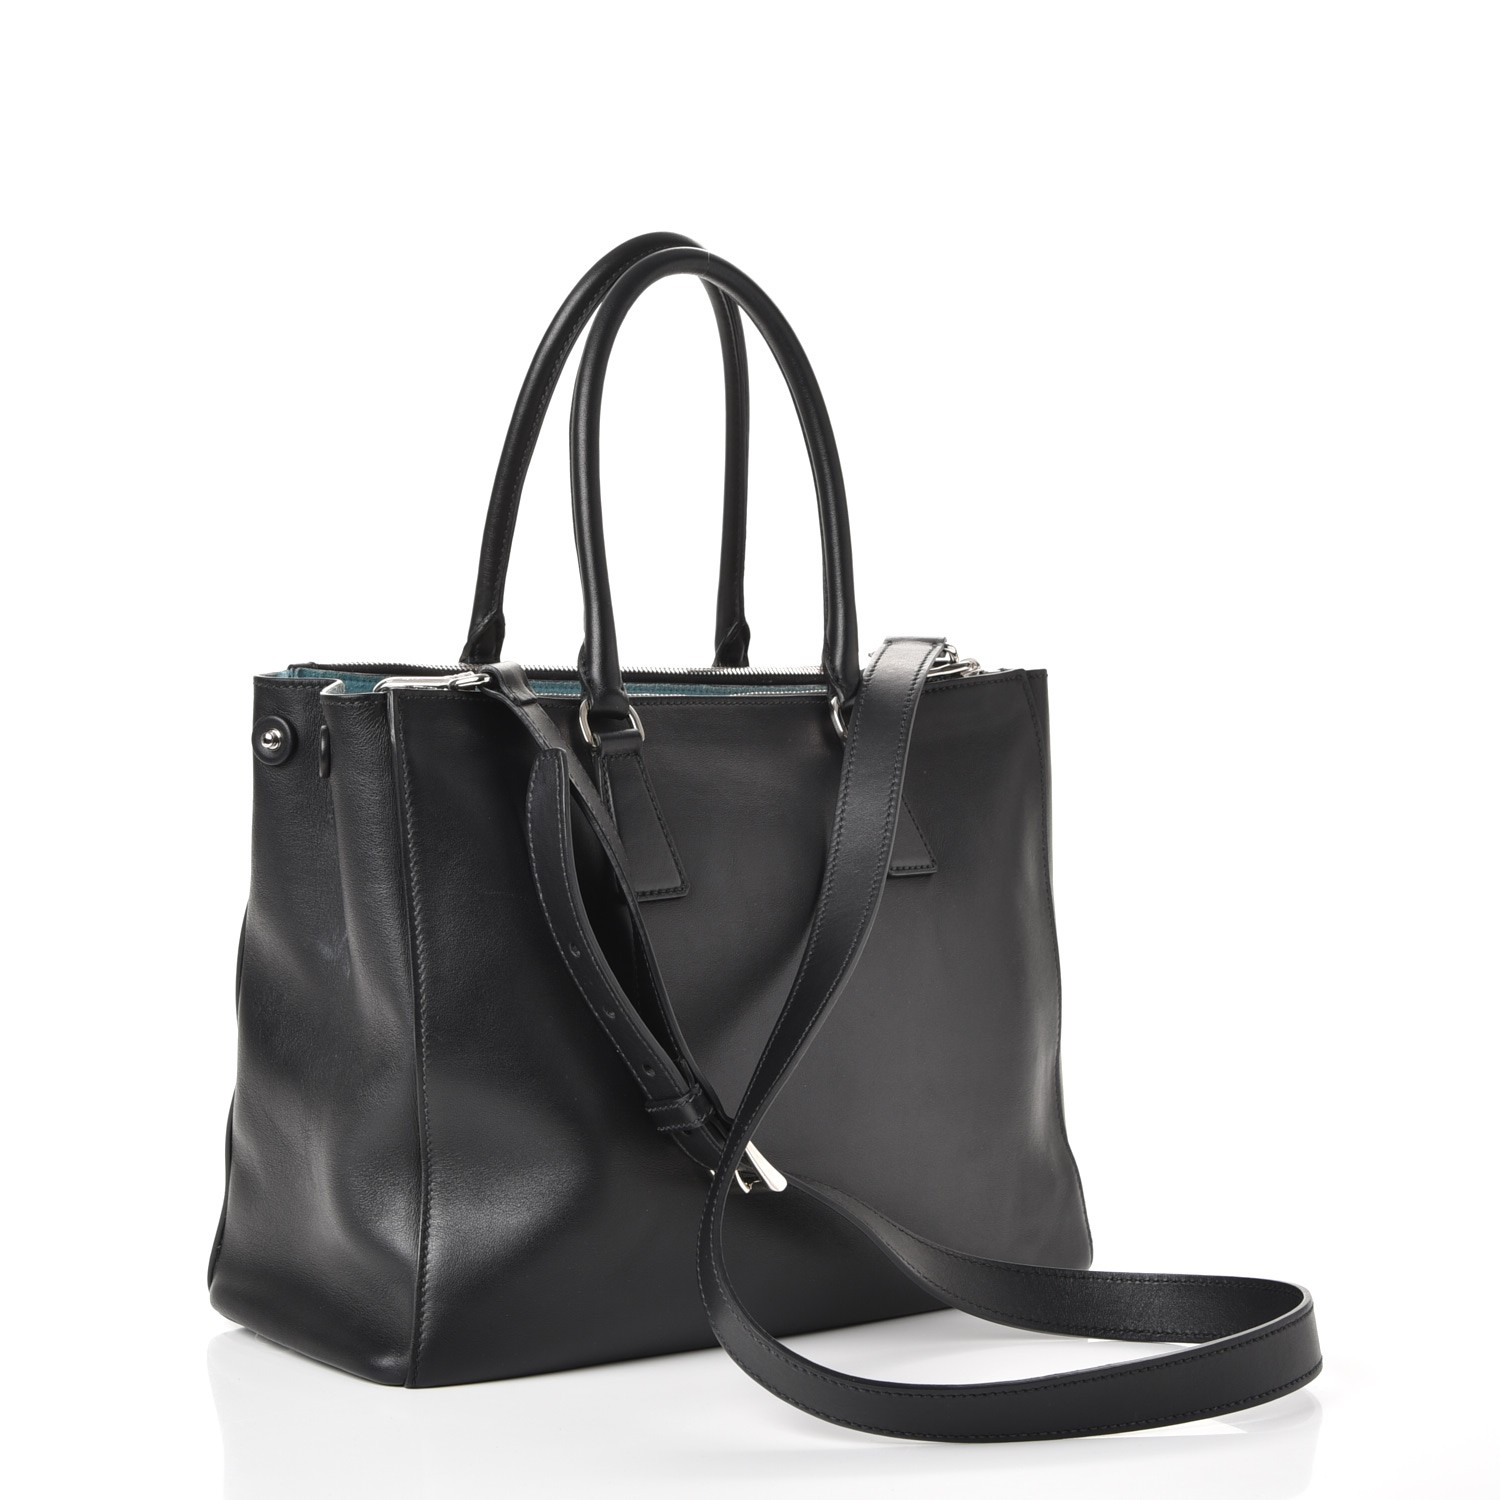 8ac5a817fb63 PRADA City Calf Bi-Color Medium Galleria Double Zip Tote Nero Black Celeste  238803